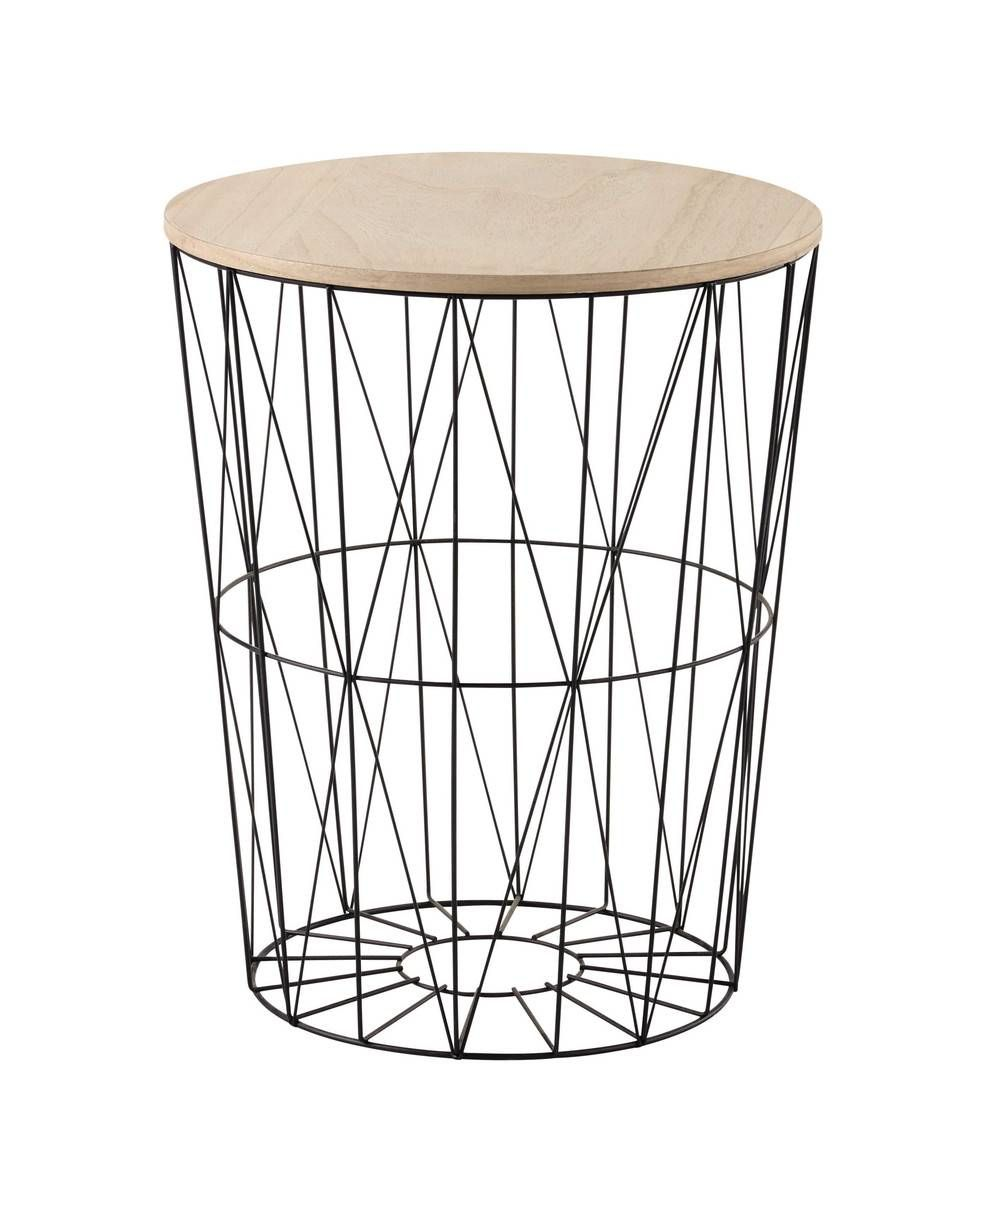 Bout De Canape Noir Bout Canape Metal In 2020 Side Table Side Table Wood Master Bedrooms Decor